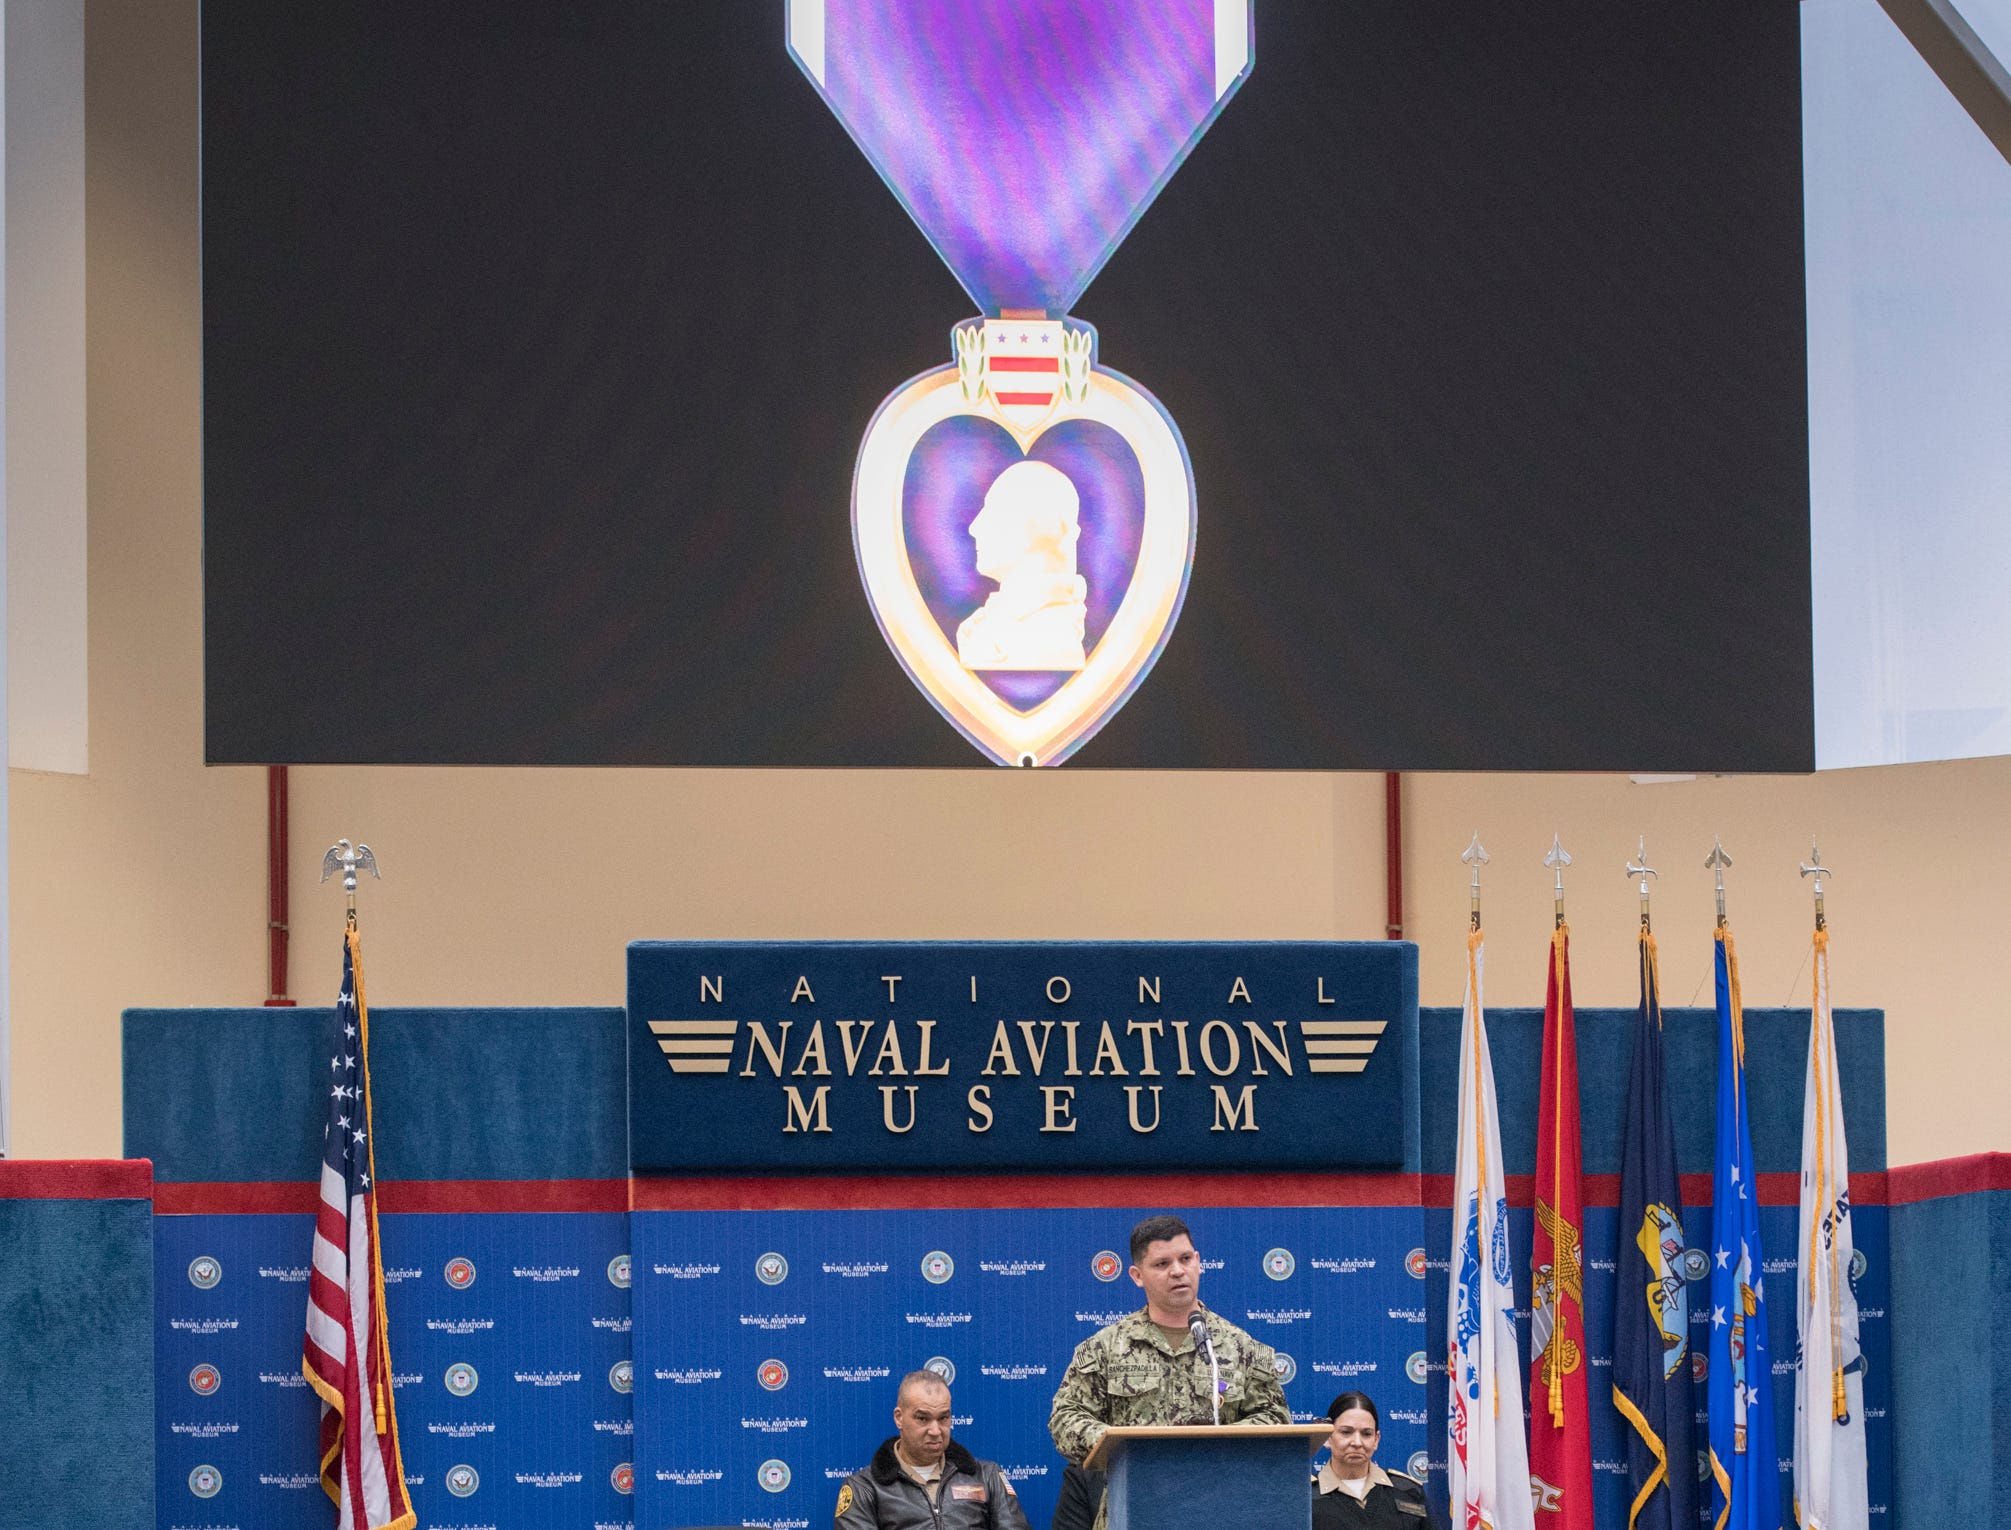 Navy Hospital Corpsman 1st Class Eduardo Sanchez-Padilla speaks after receiving the Purple Heart during a ceremony at the National Naval Aviation Museum in Pensacola on Wednesday, January 23, 2019.  Sanchez-Padilla was wounded in Afghanistan in 2009.